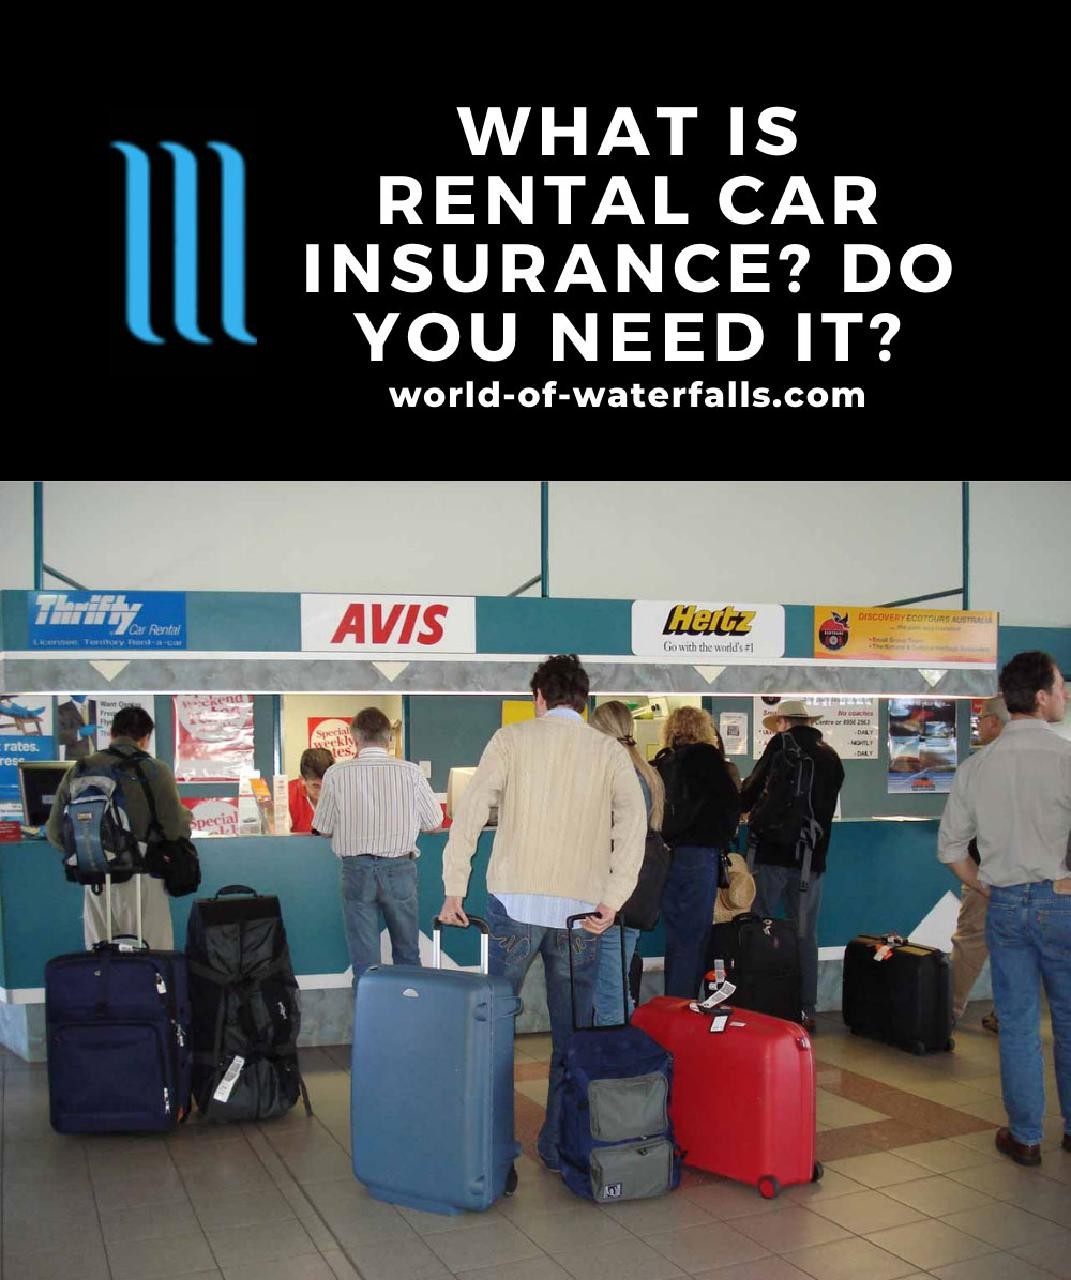 What Is Rental Car Insurance Coverage? Is It Necessary?